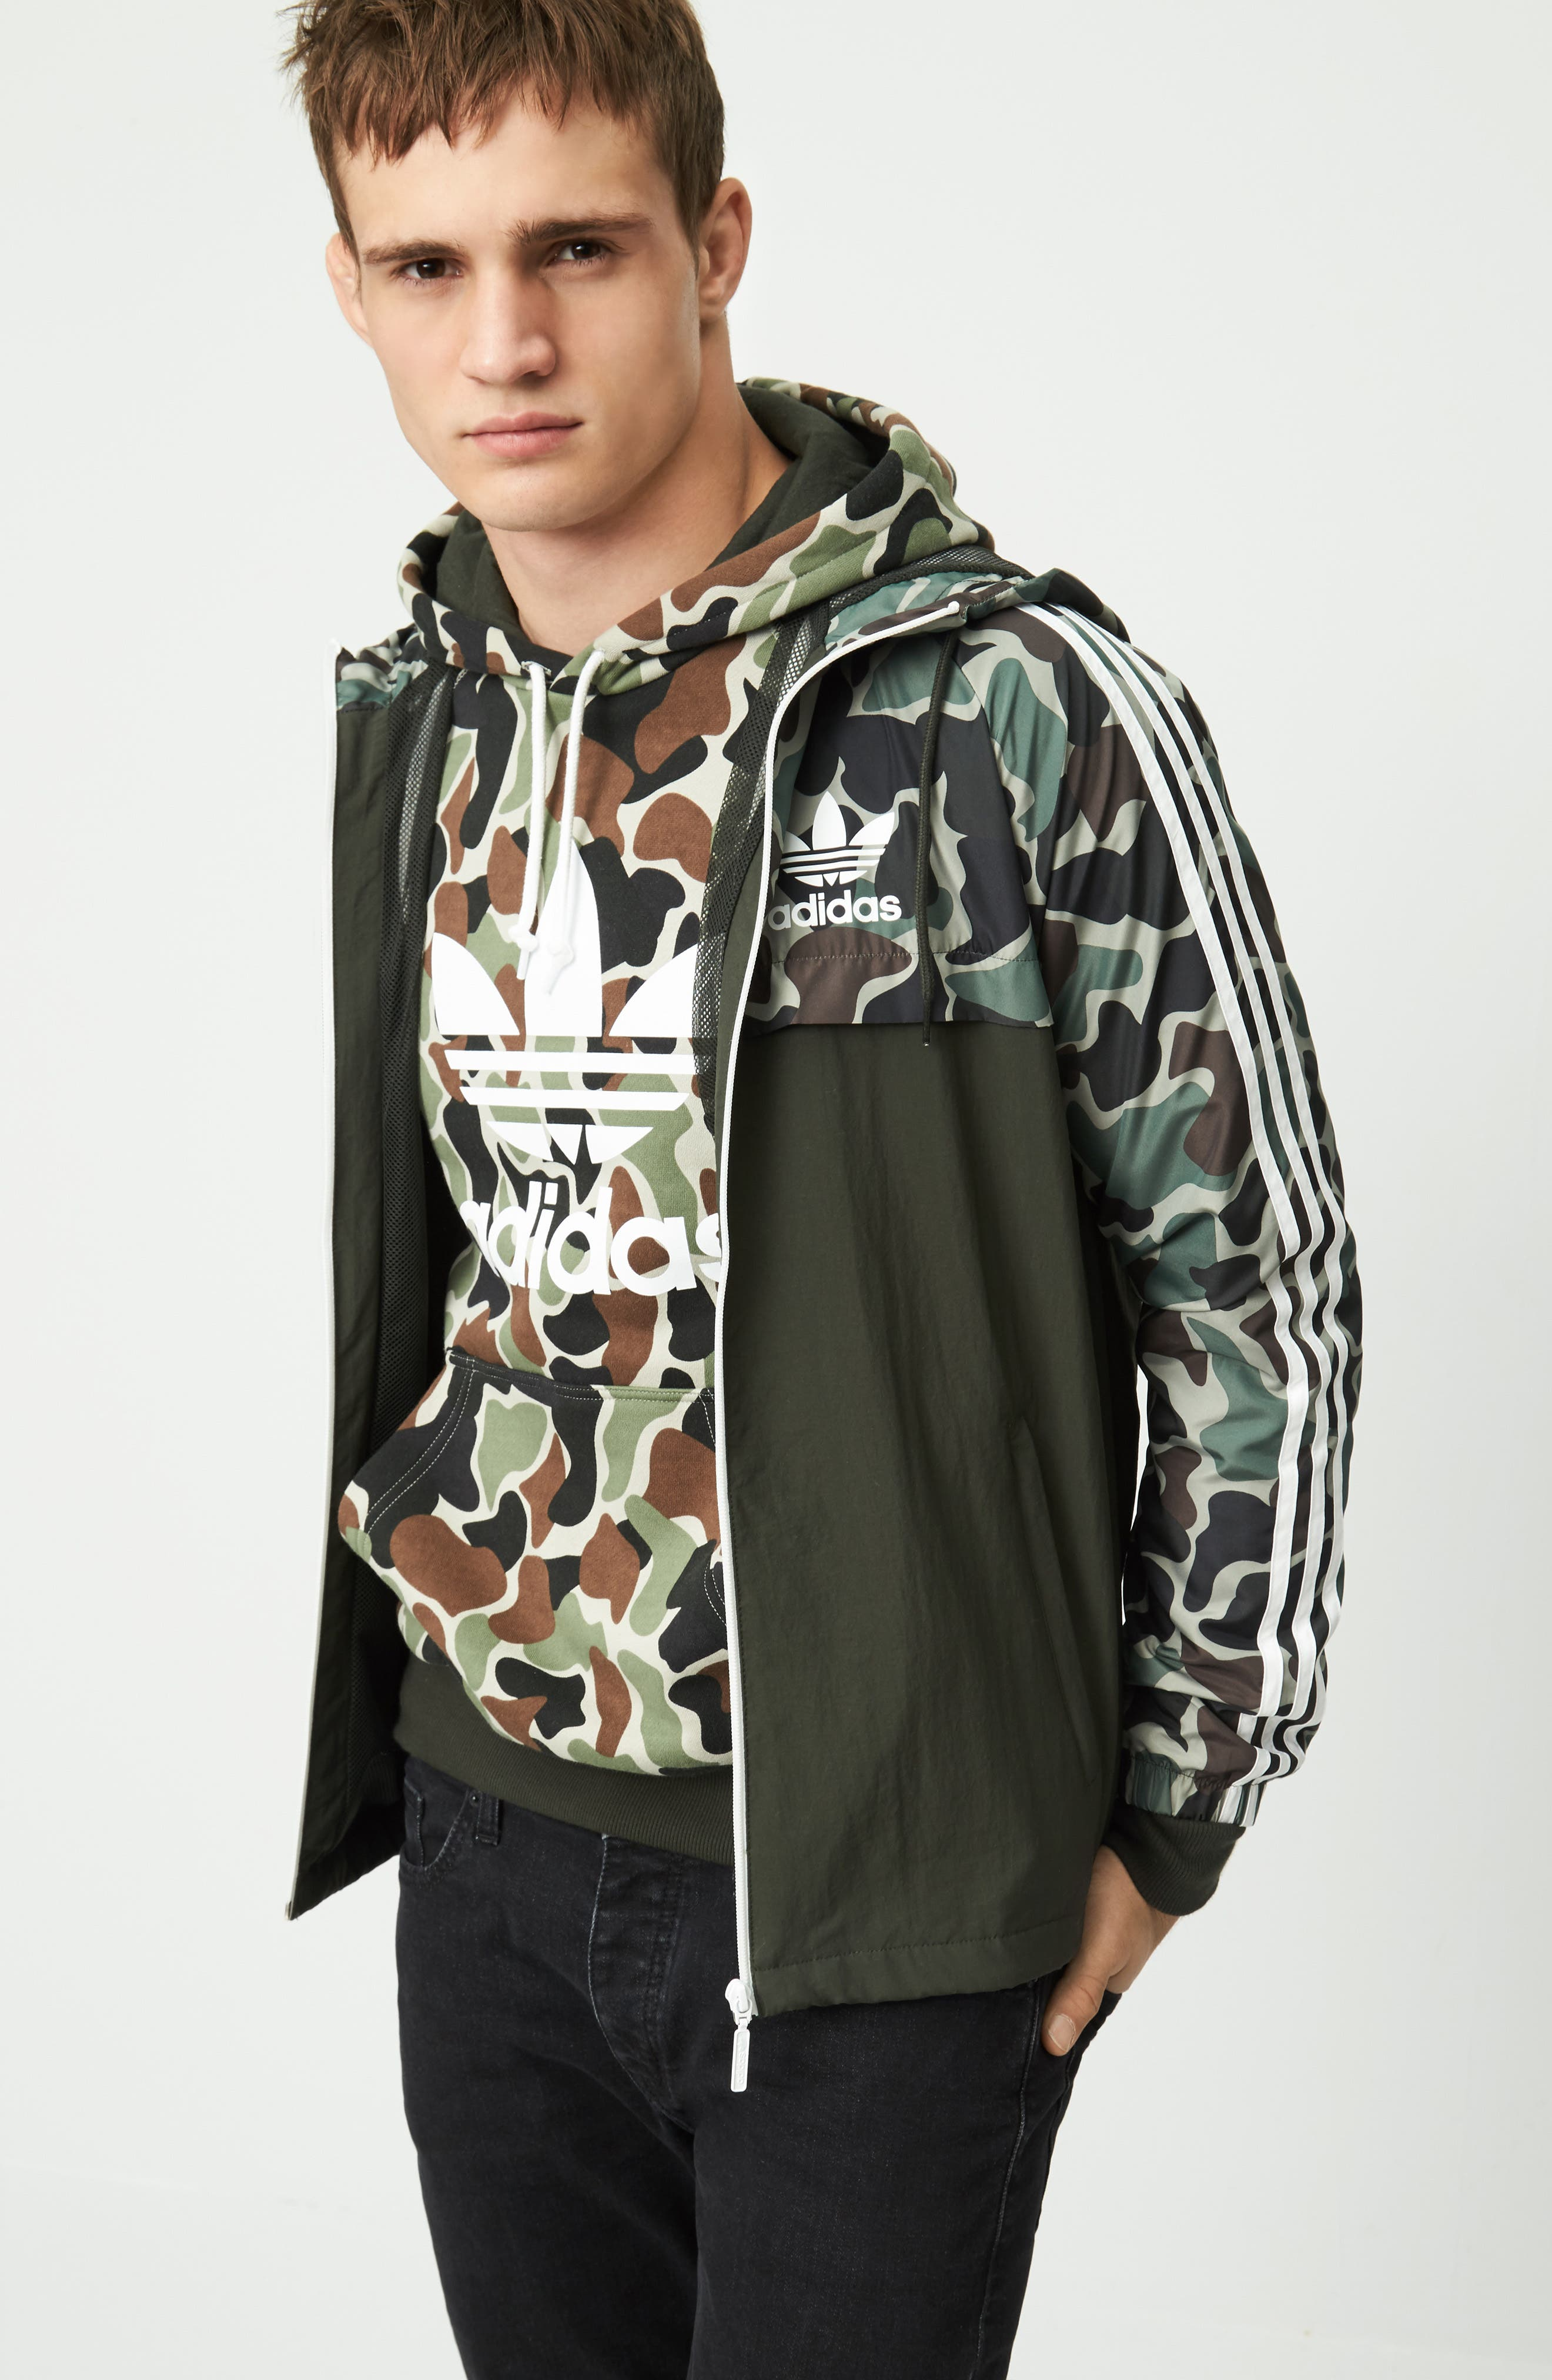 adidas Originals Windbreaker, Hoodie and Naked & Famous Denim Skinny Fit Jeans Outfit with Accessories